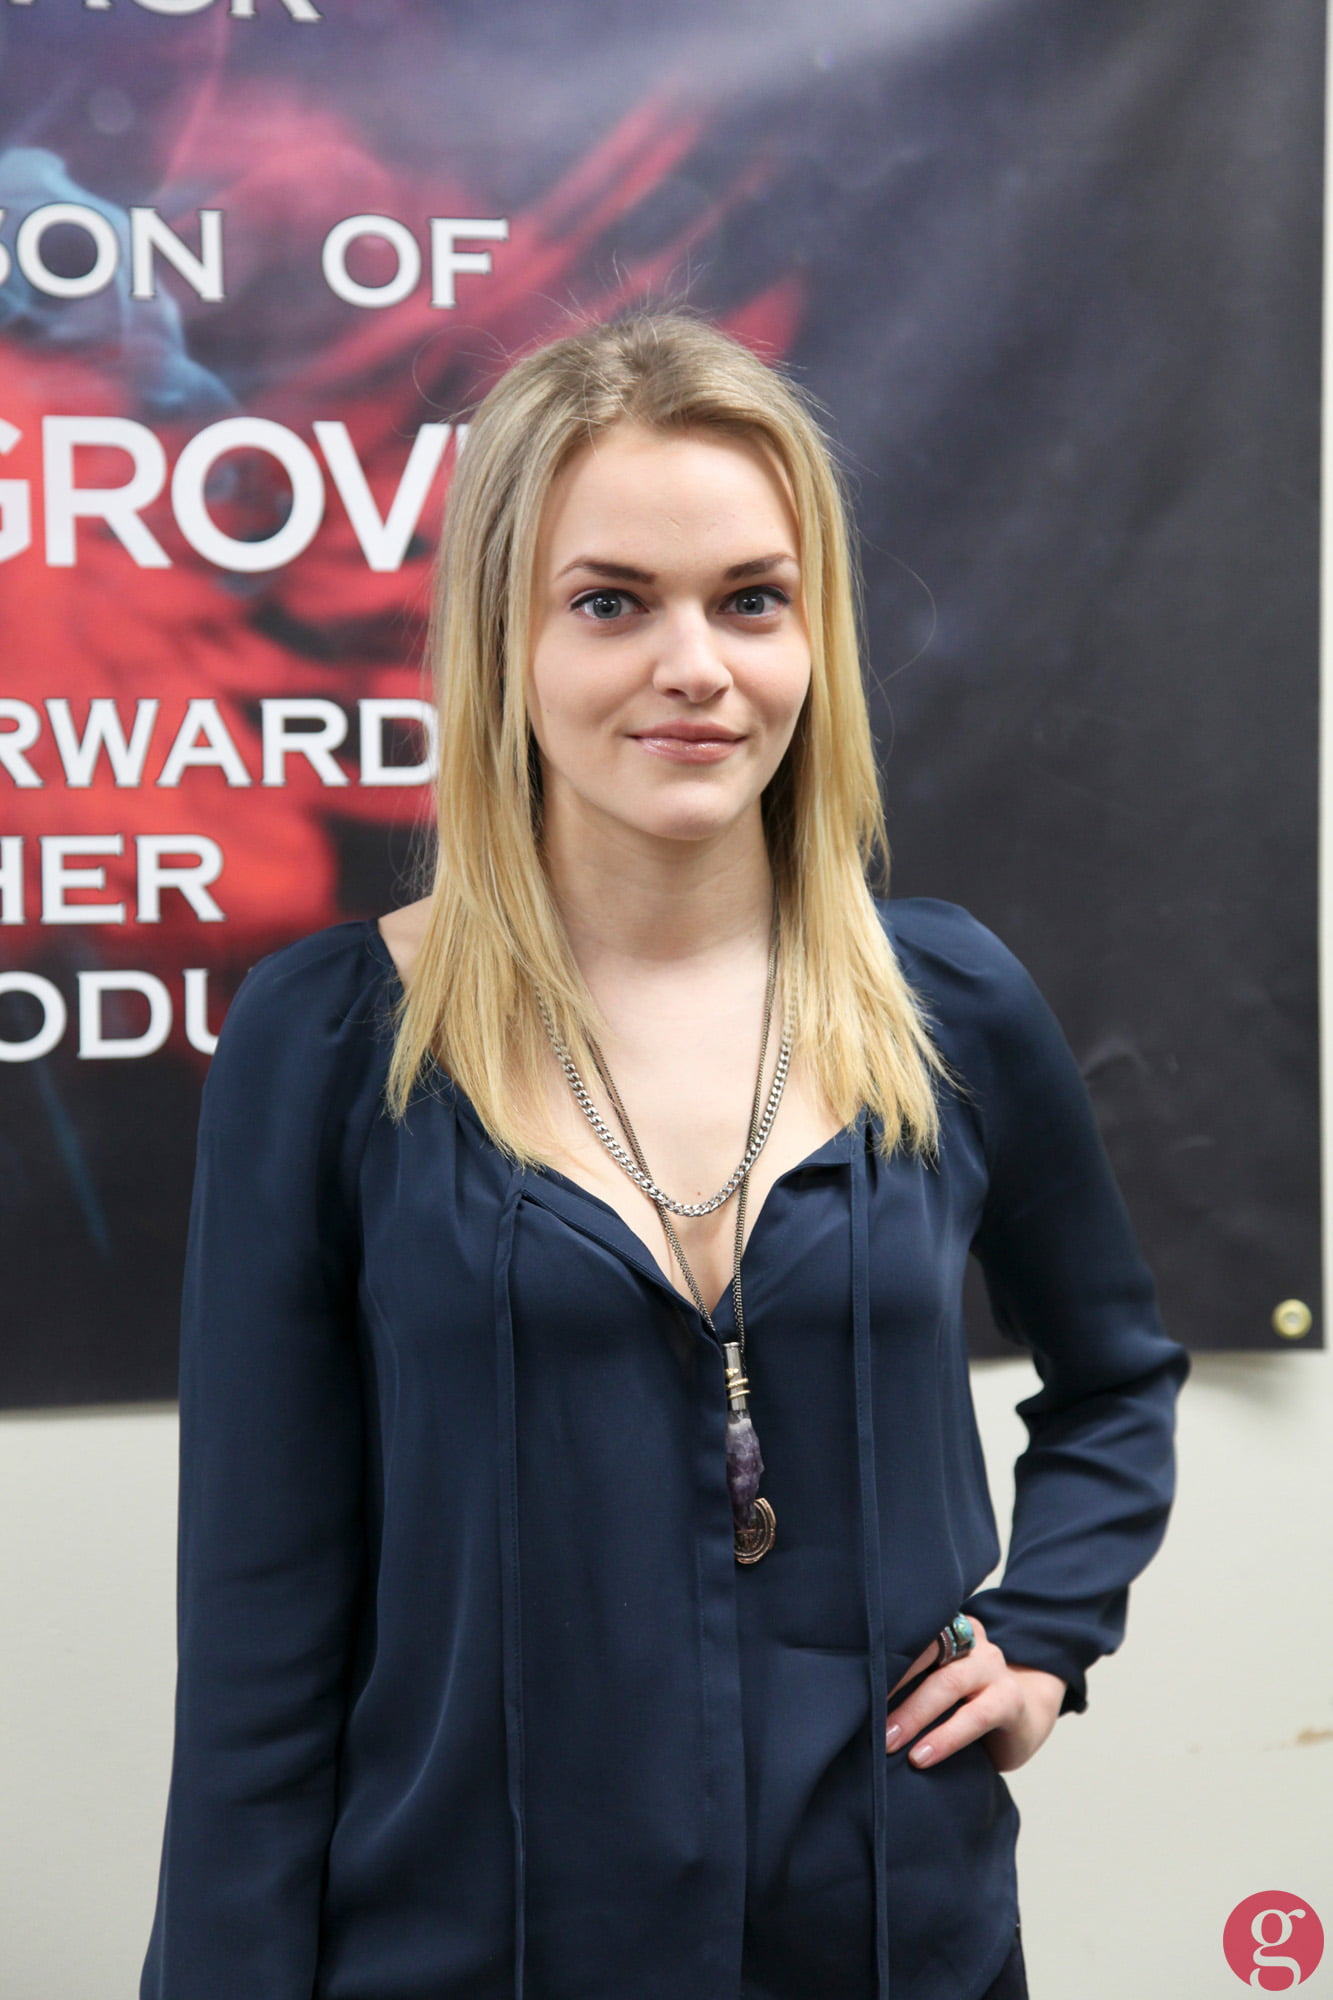 madeline brewer interviewmadeline brewer gif hunt, madeline brewer orange is the new black, madeline brewer black mirror, madeline brewer instagram, madeline brewer, madeline brewer imdb, madeline brewer wiki, madeline brewer twitter, madeline brewer interview, madeline brewer tumblr, madeline brewer facebook, madeline brewer oitnb, madeline brewer commercial, madeline brewer movies, madeline brewer tattoos, madeline brewer height, madeline brewer gay, madeline brewer hot